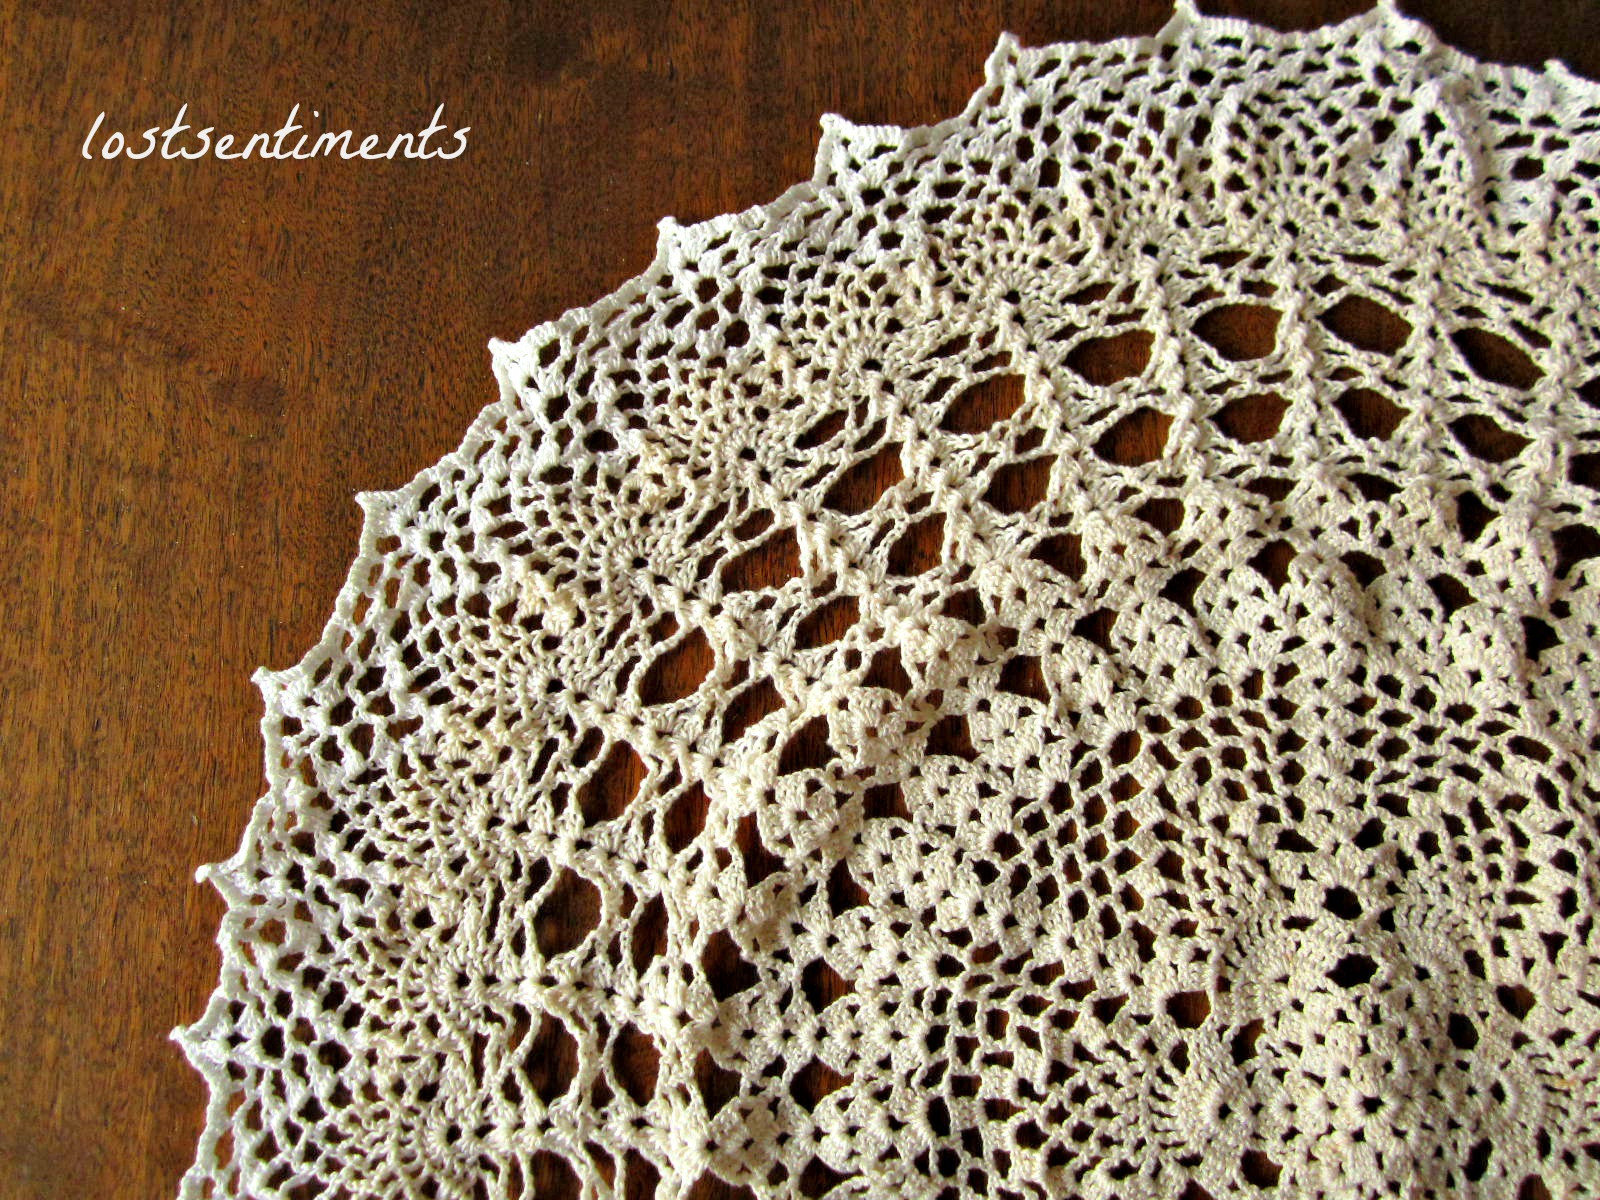 Crochet Doilies Unique Lostsentiments Vintage Crochet Doily Pattern Venus Of Incredible 43 Ideas Crochet Doilies